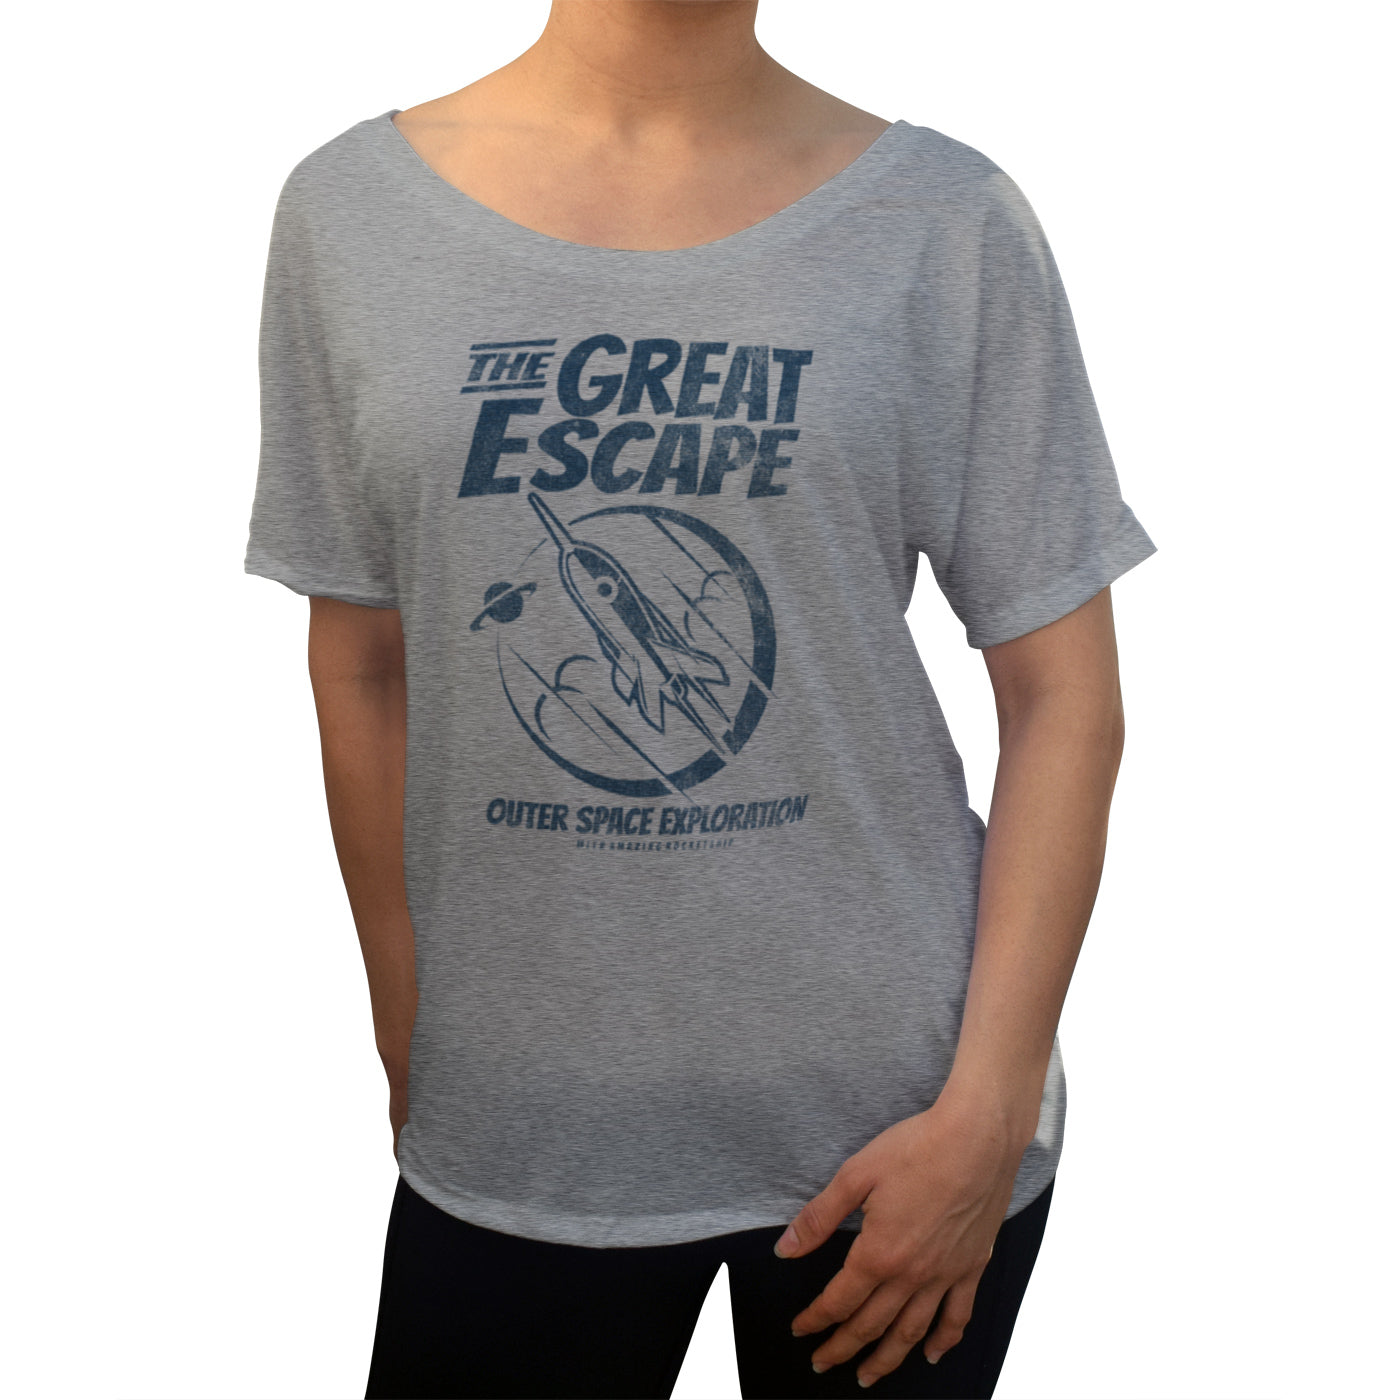 Women's The Great Escape Space Exploration Scoop Neck T-Shirt